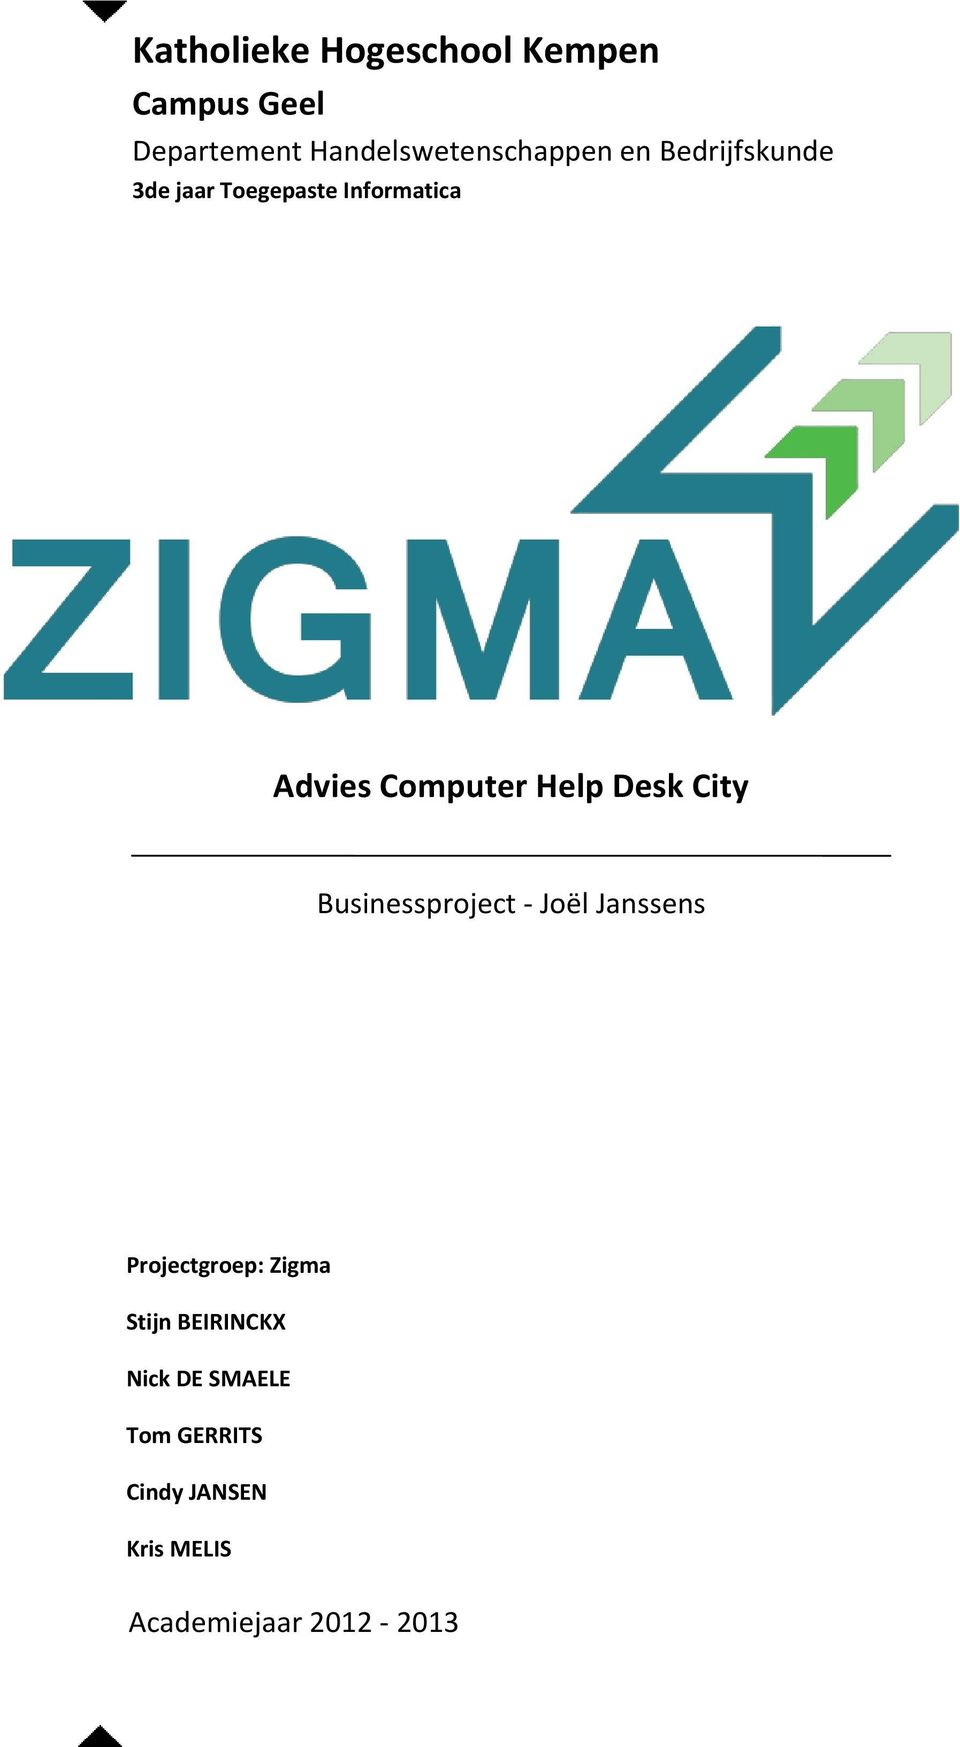 Desk City Businessproject - Joël Janssens Projectgroep: Zigma Stijn